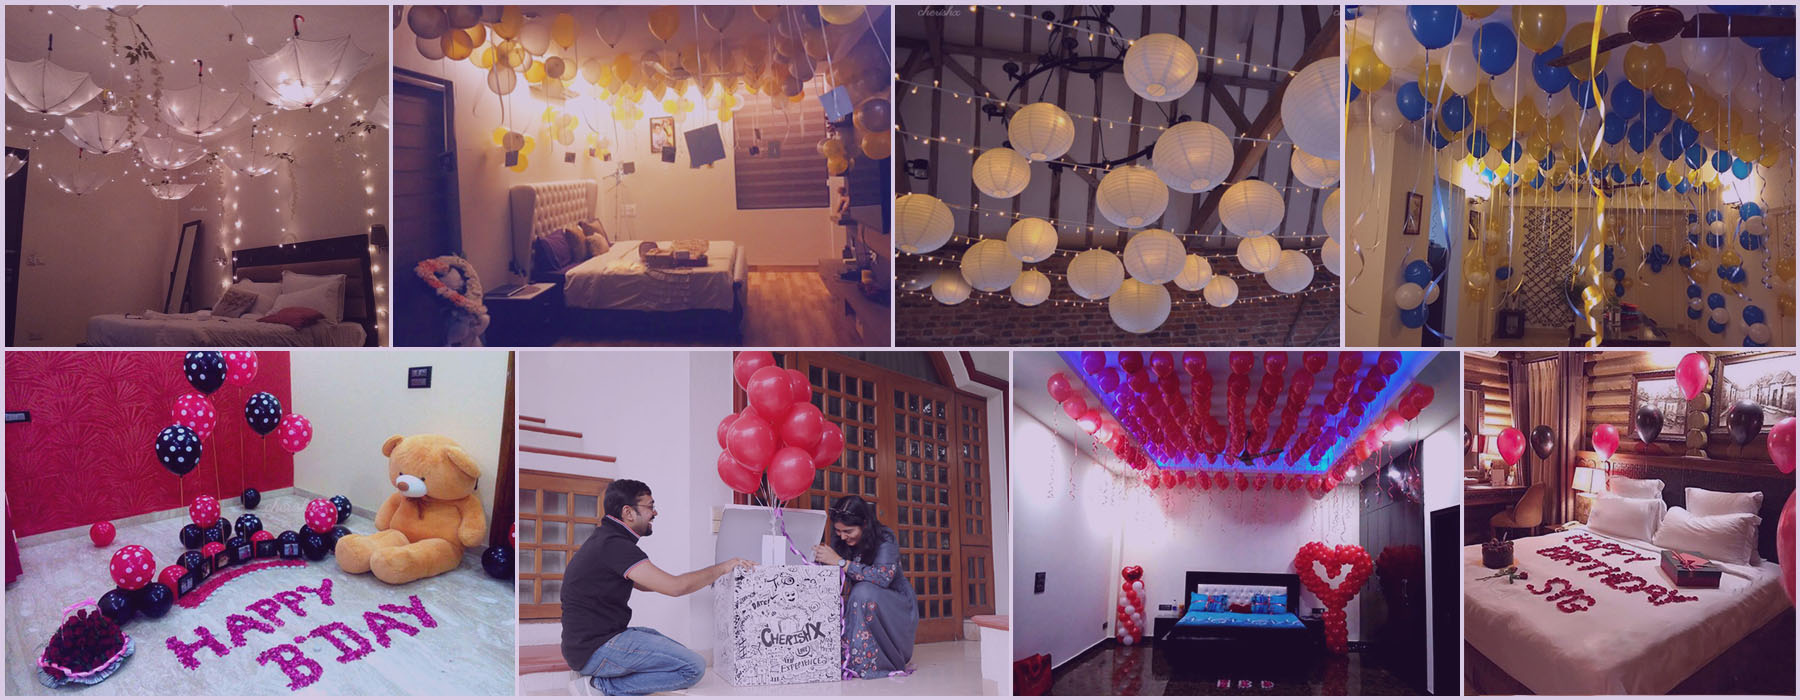 Balloon Decorations Birthday Decoration Services In Delhi Ncr